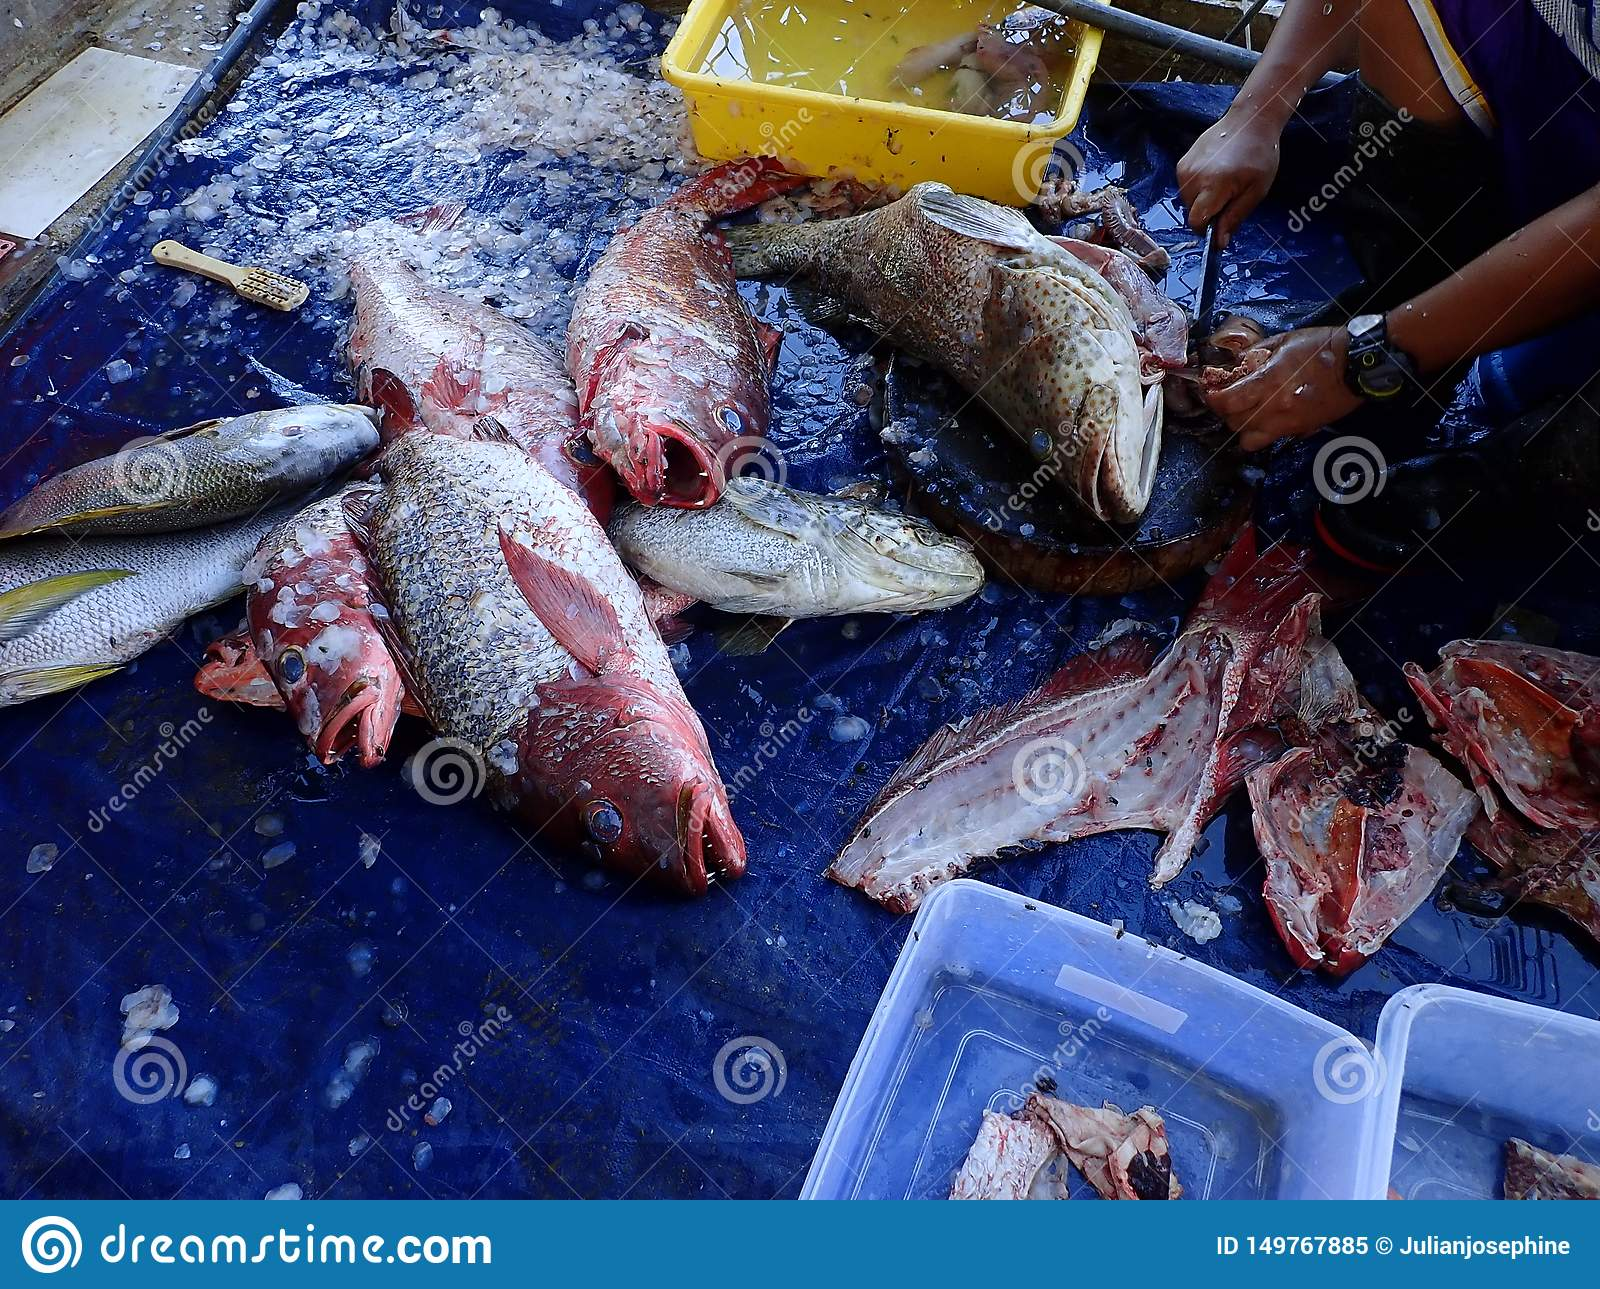 Catch of the day and cleaned and fresh fishes ready to cook.